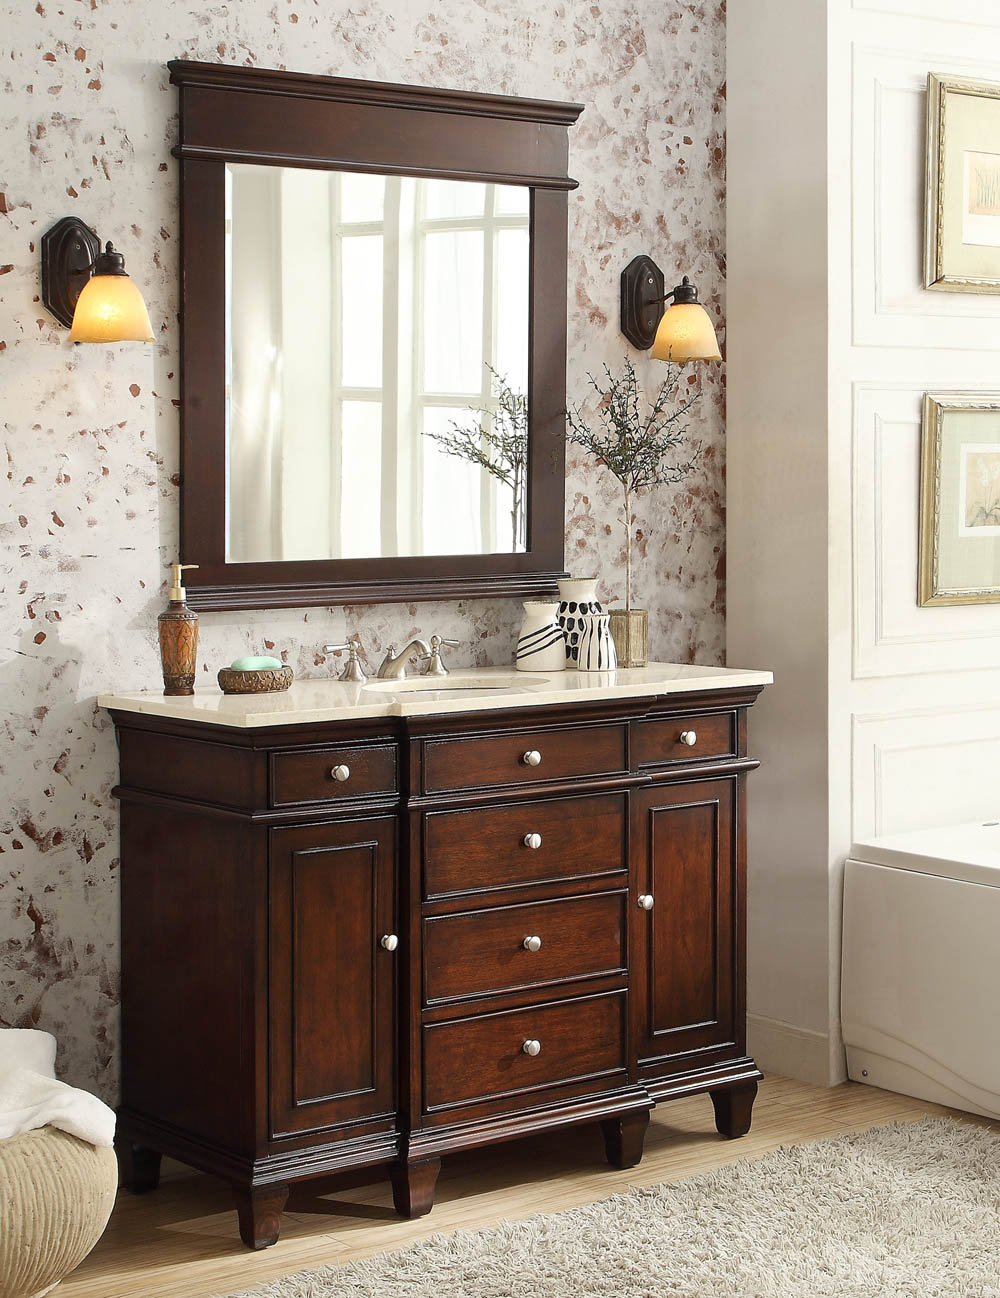 48 Inch Bathroom Vanity Cream Marble Top